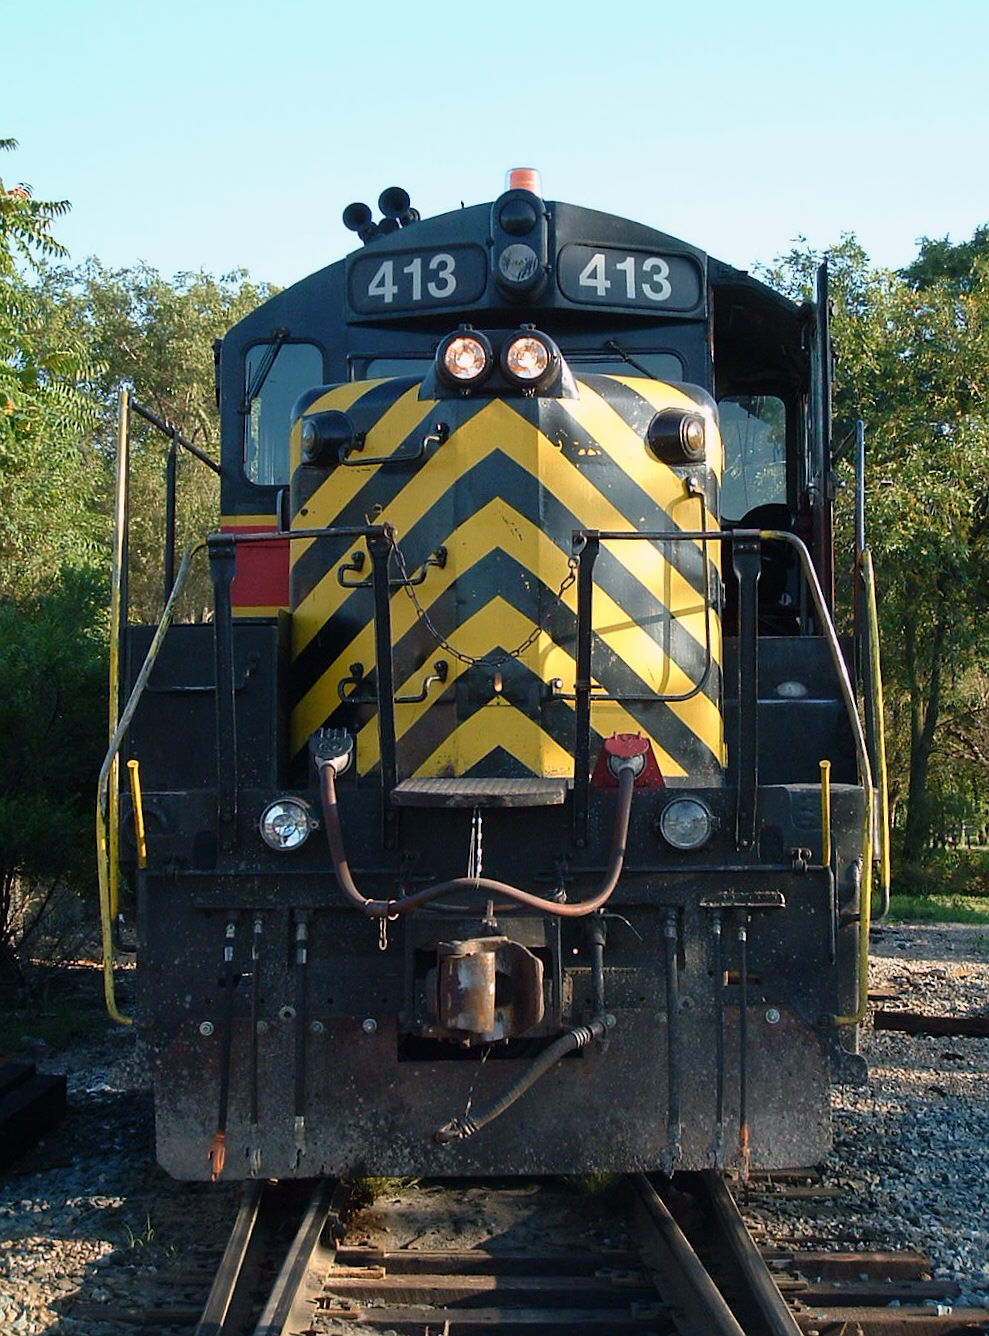 413 head on roster shot, this unit looks so mean from this angle, Blue Island, IL 08/06/04